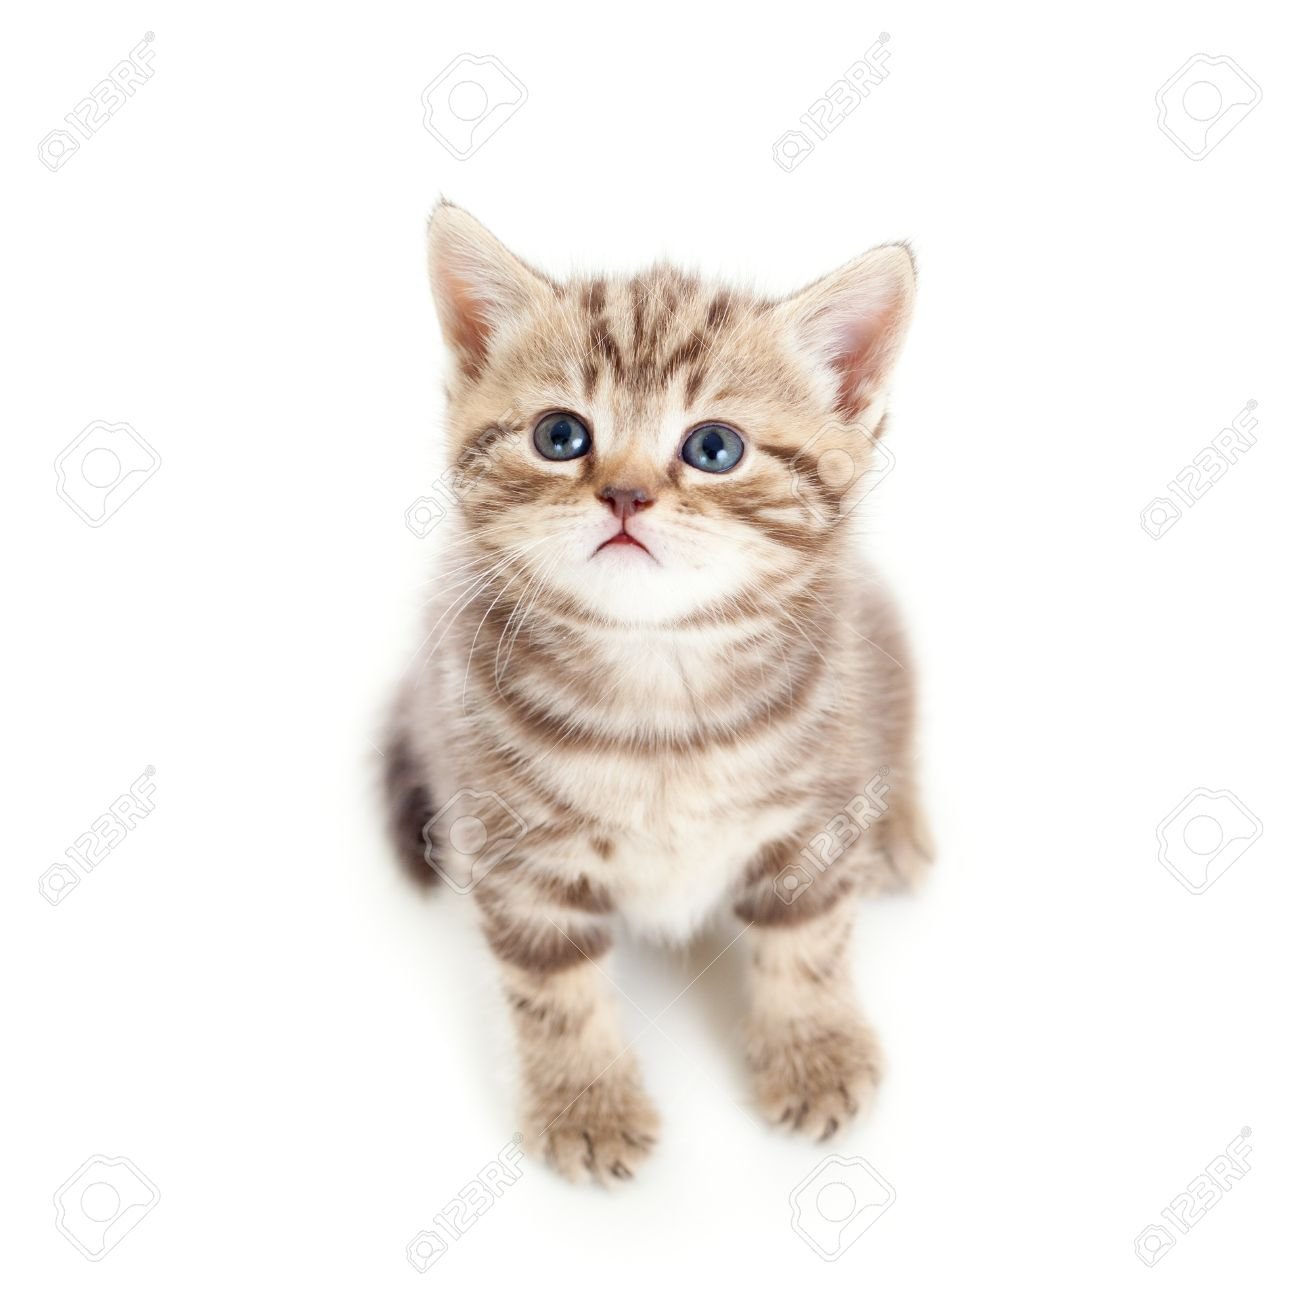 top view of baby cat isolated on white background Stock Photo - 14192061